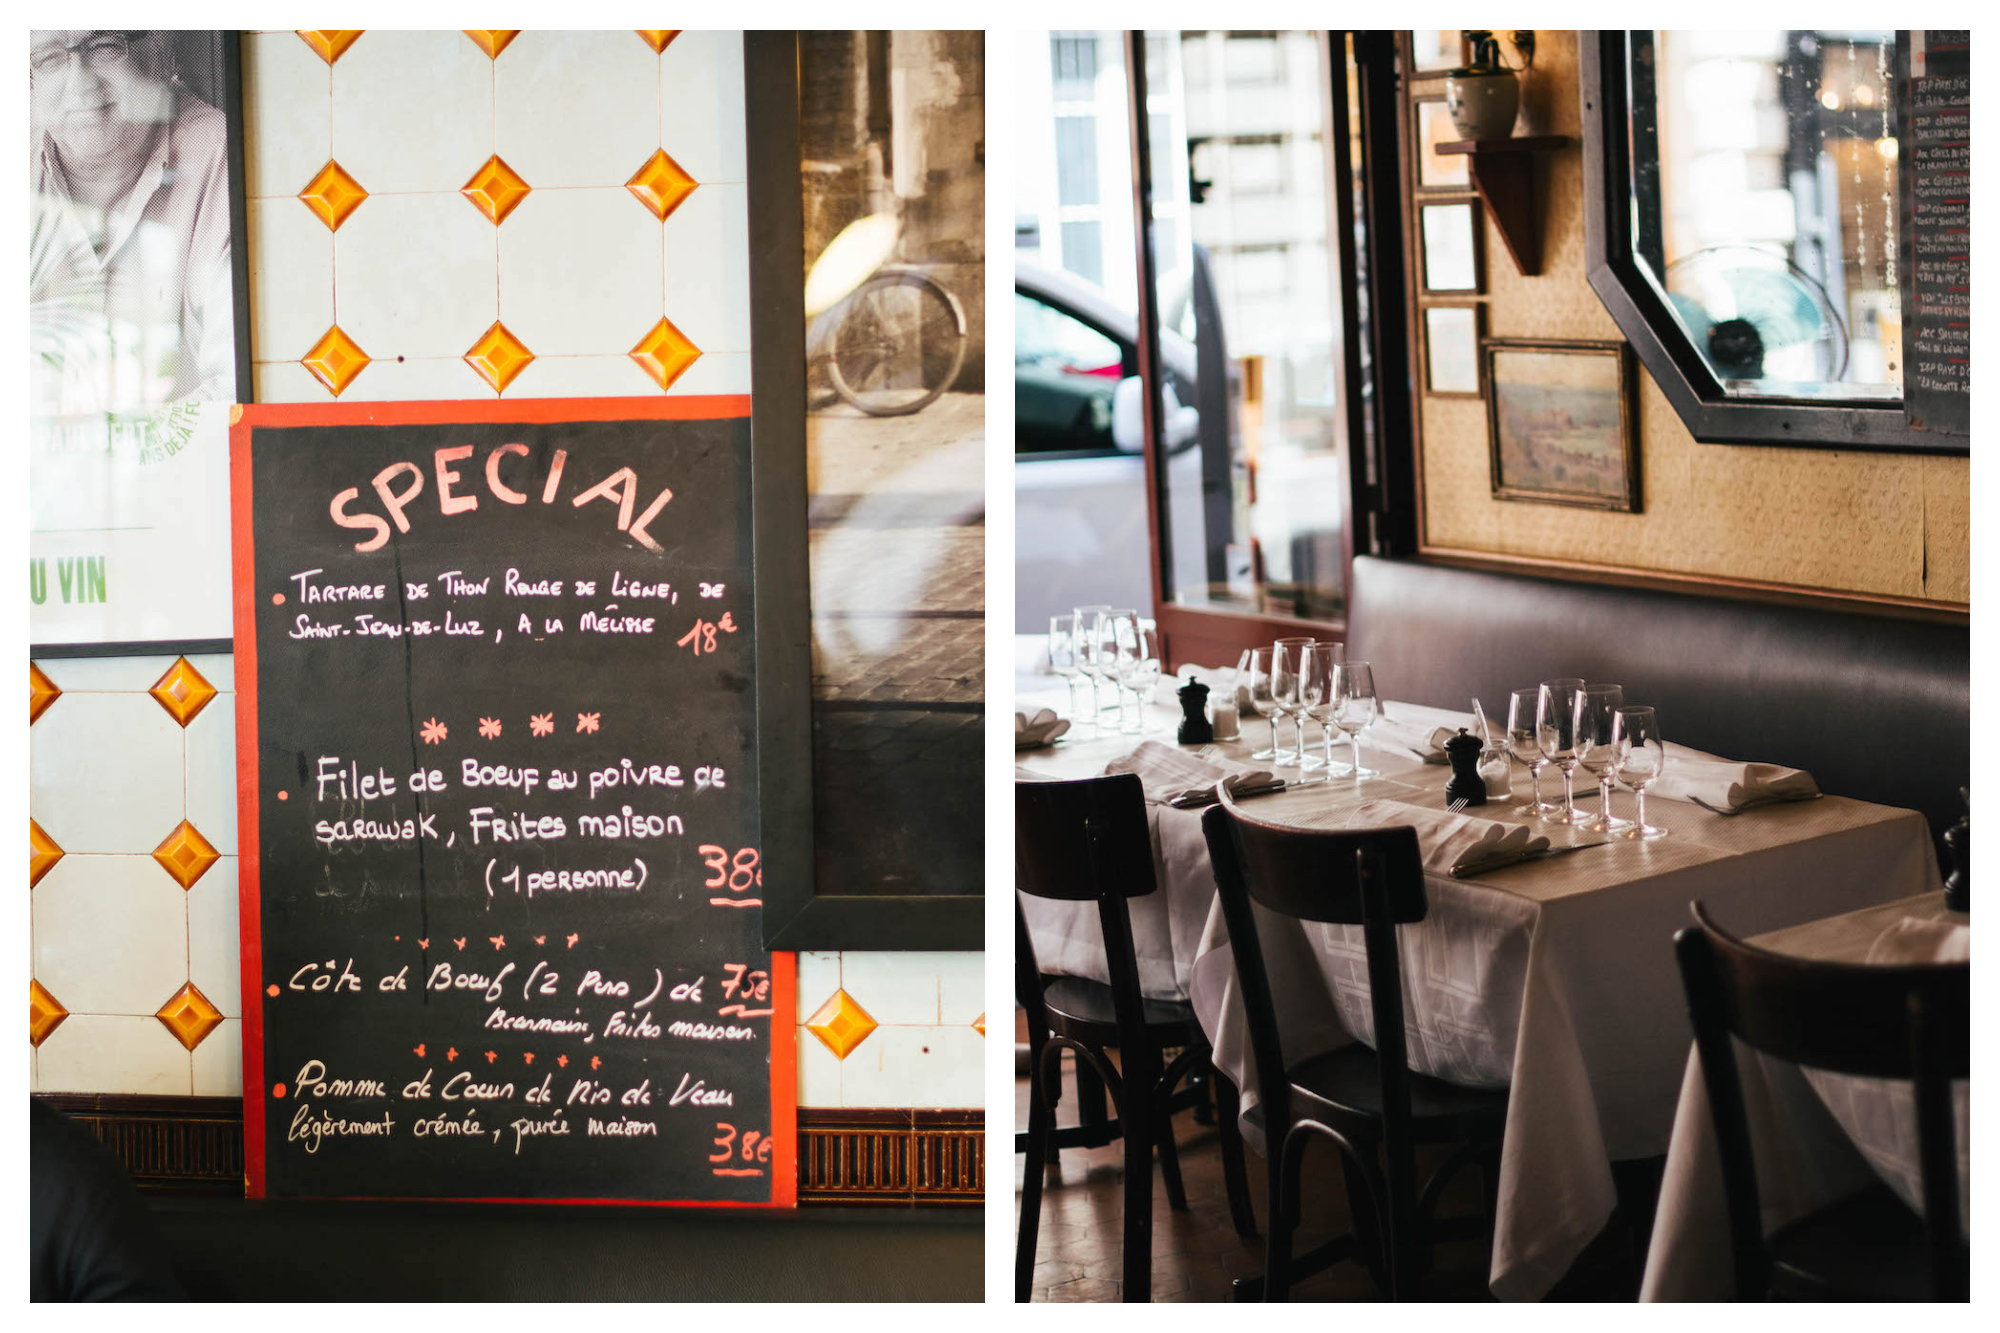 Left: A board leans against the tiled wall of Bistro Paul Bert in Paris. The specials for the day are written on it, including tartare de thon rouge (red tuna tartare), filet de boeuf and côte de boeuf, Right: An empty table is set and ready for dinner time at Bistro Paul Bert